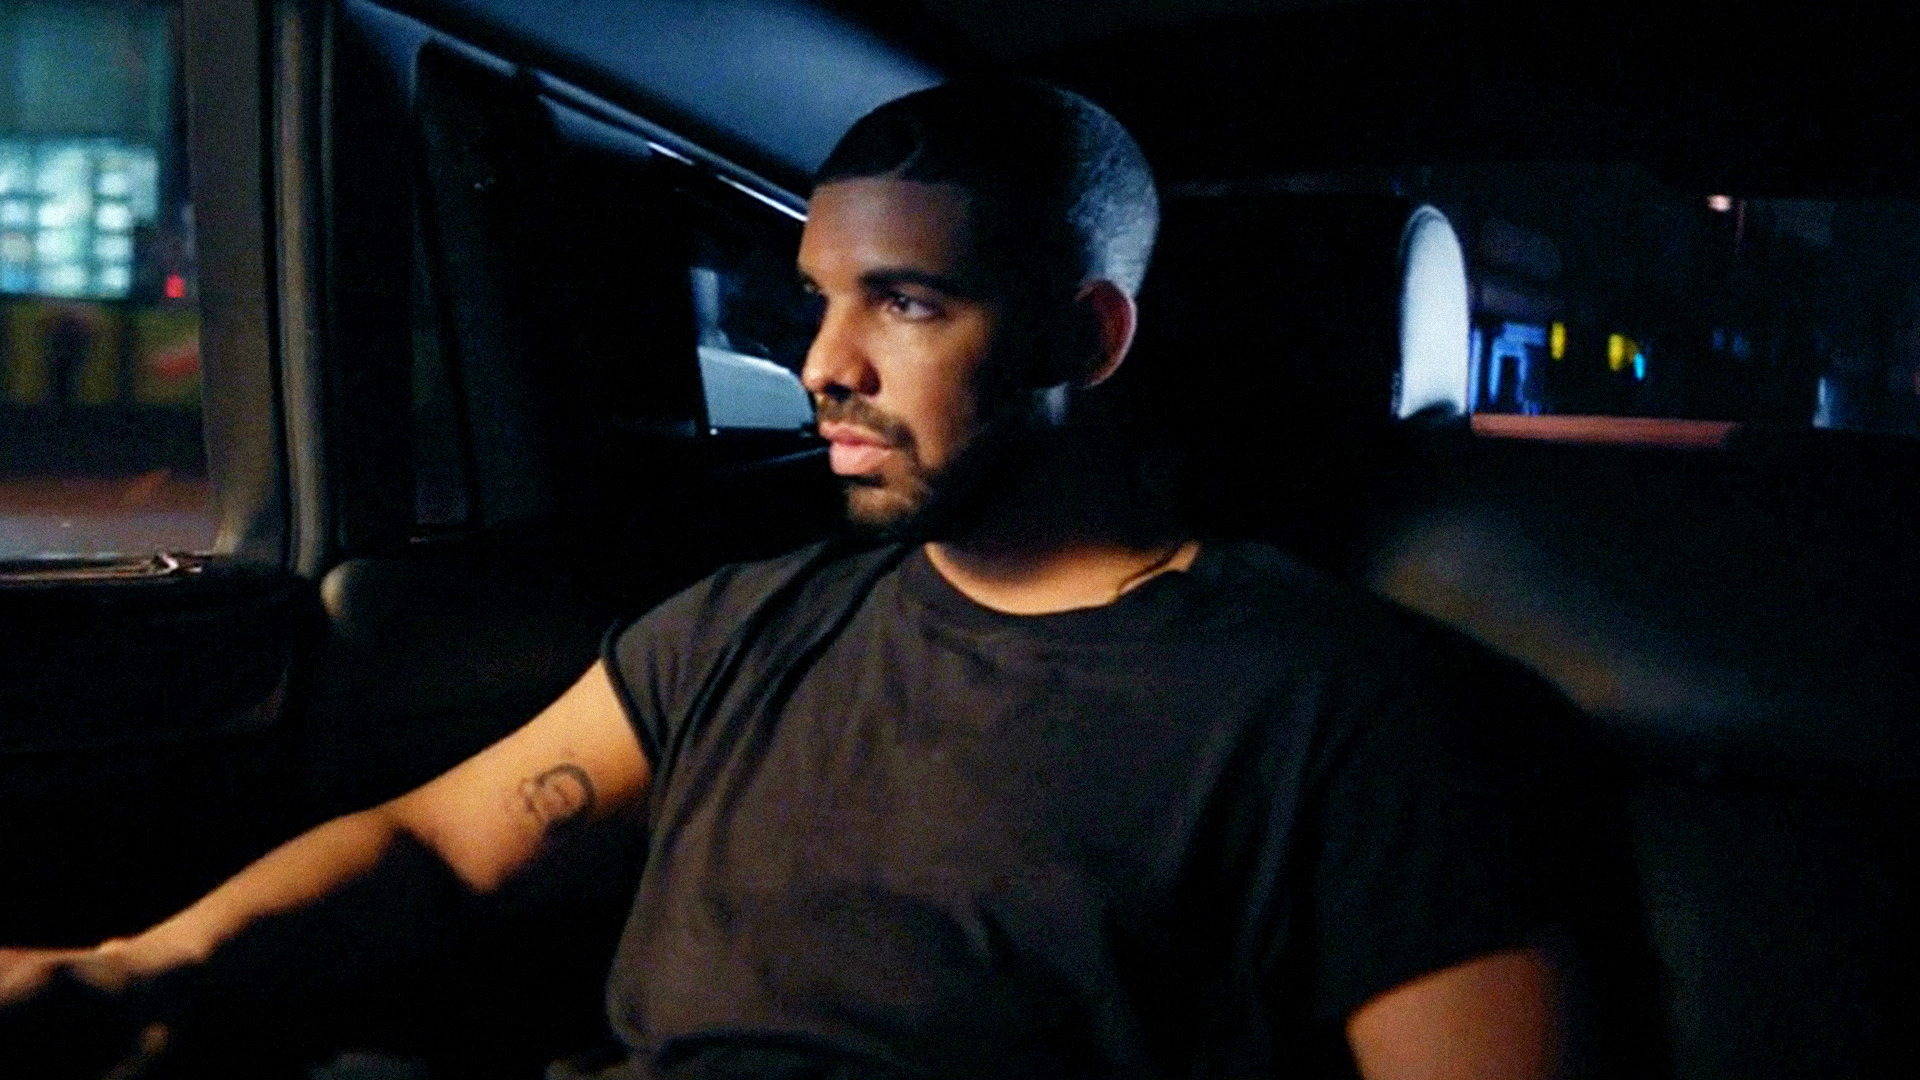 drake artist hd wallpaper 71809